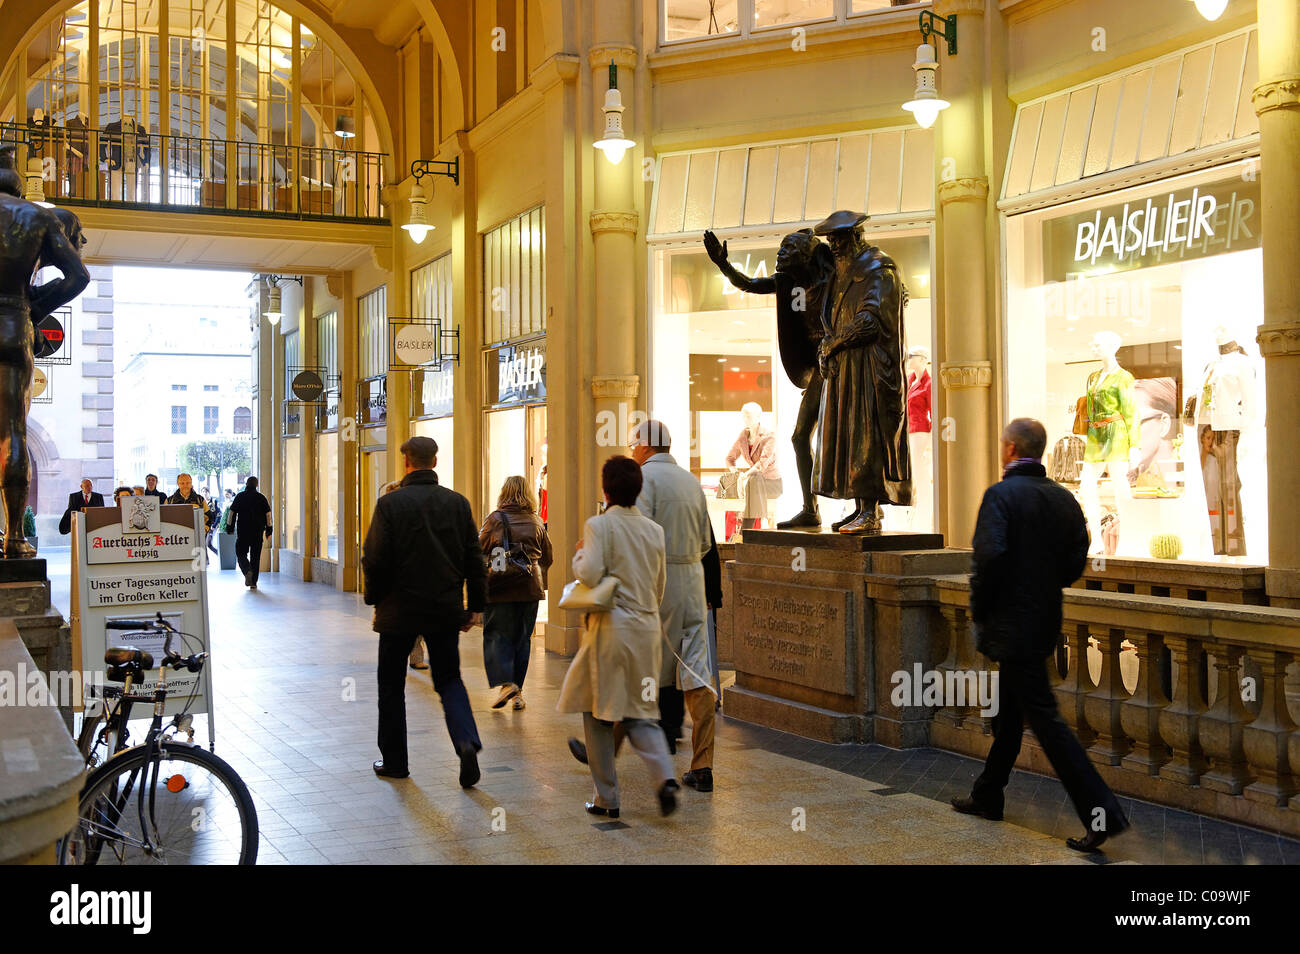 Faust and Mephisto in front of Auerbach's Keller, Maedler Passage shopping arcade, Leipzig, Saxony, Germany, - Stock Image